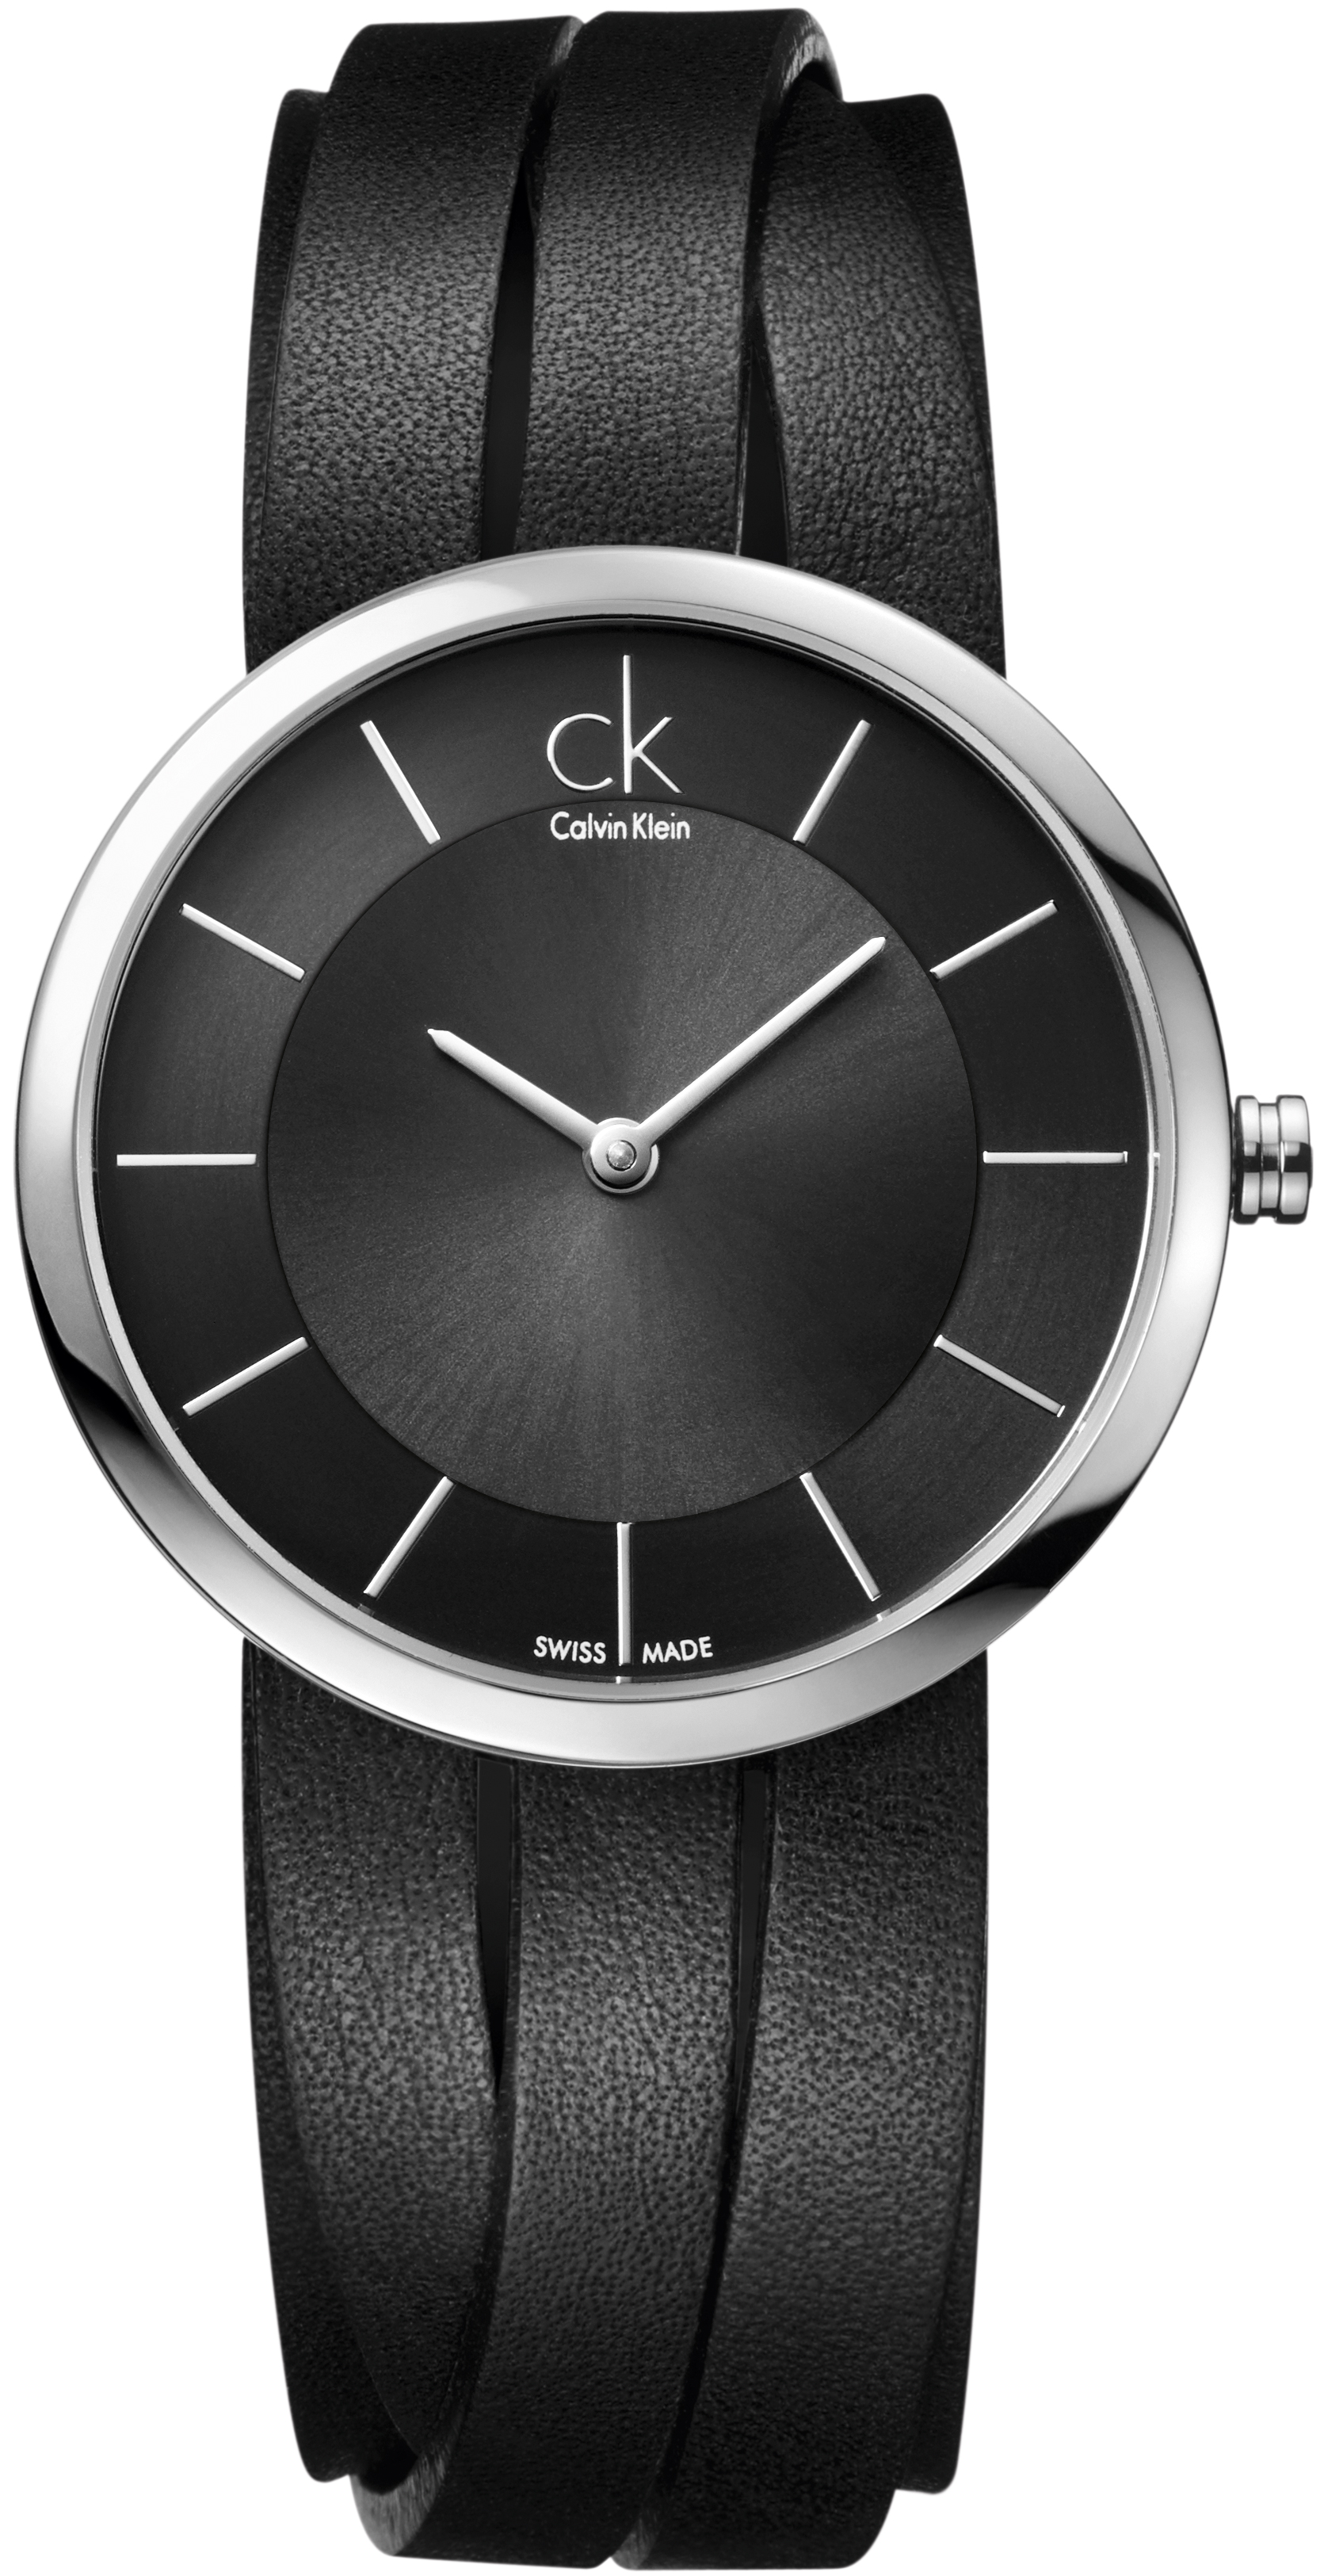 baselworld 2012 extent by calvin klein